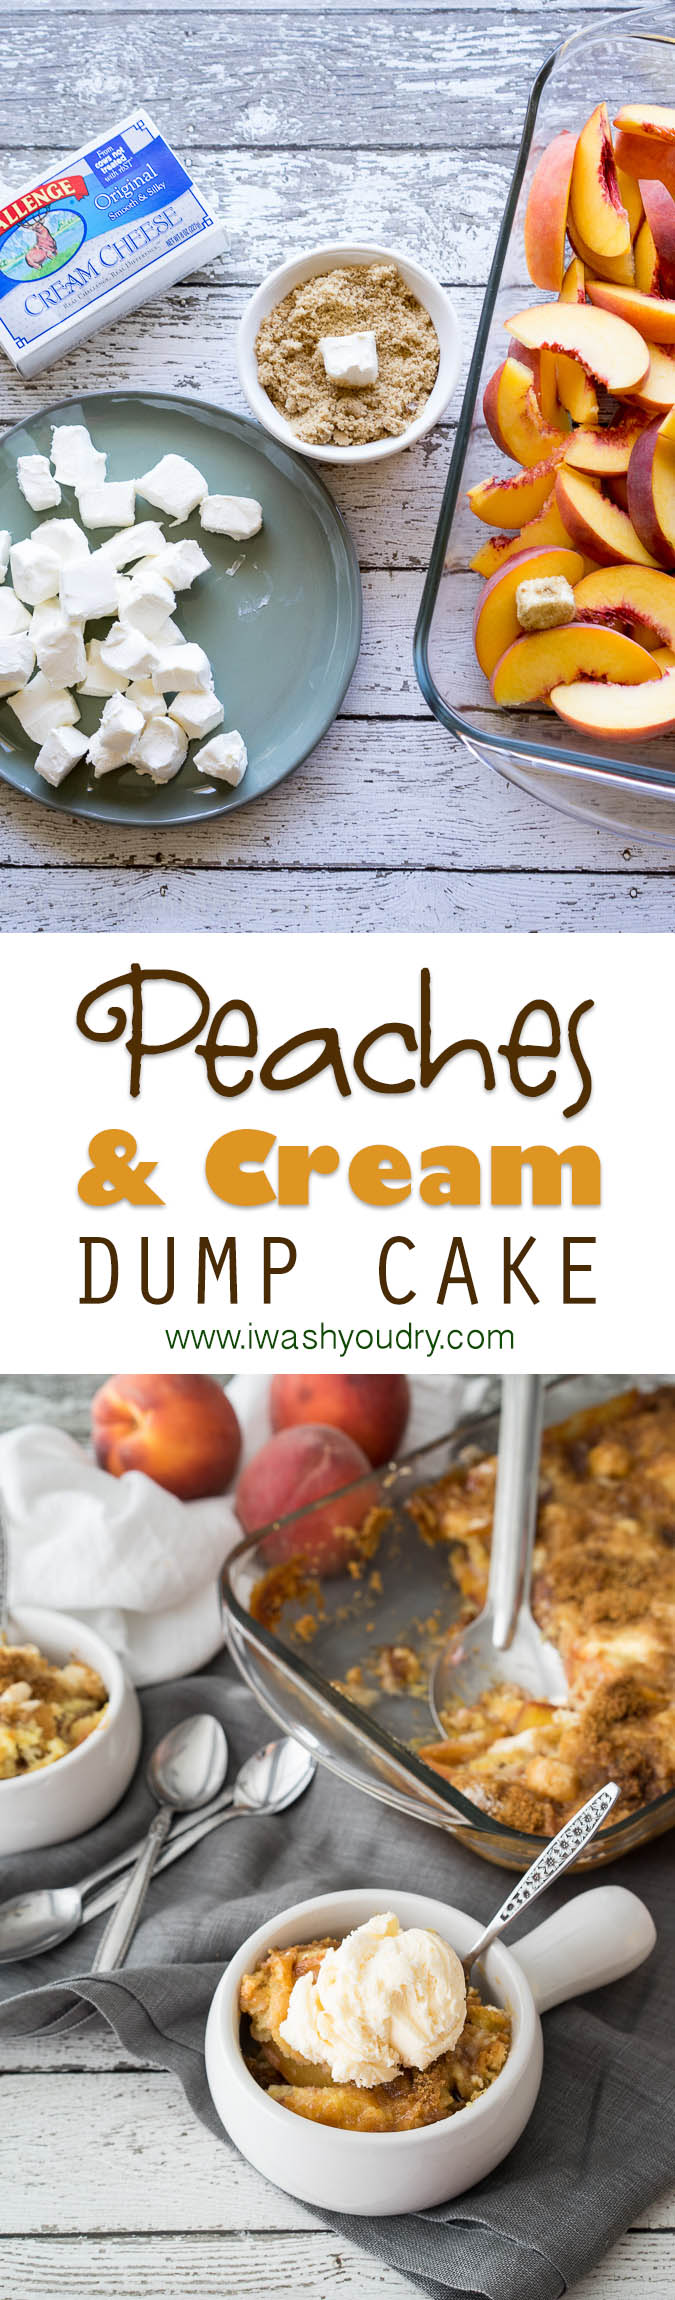 Super easy Peaches and Cream Dump Cake! No frosting needed for this party-worthy dessert!